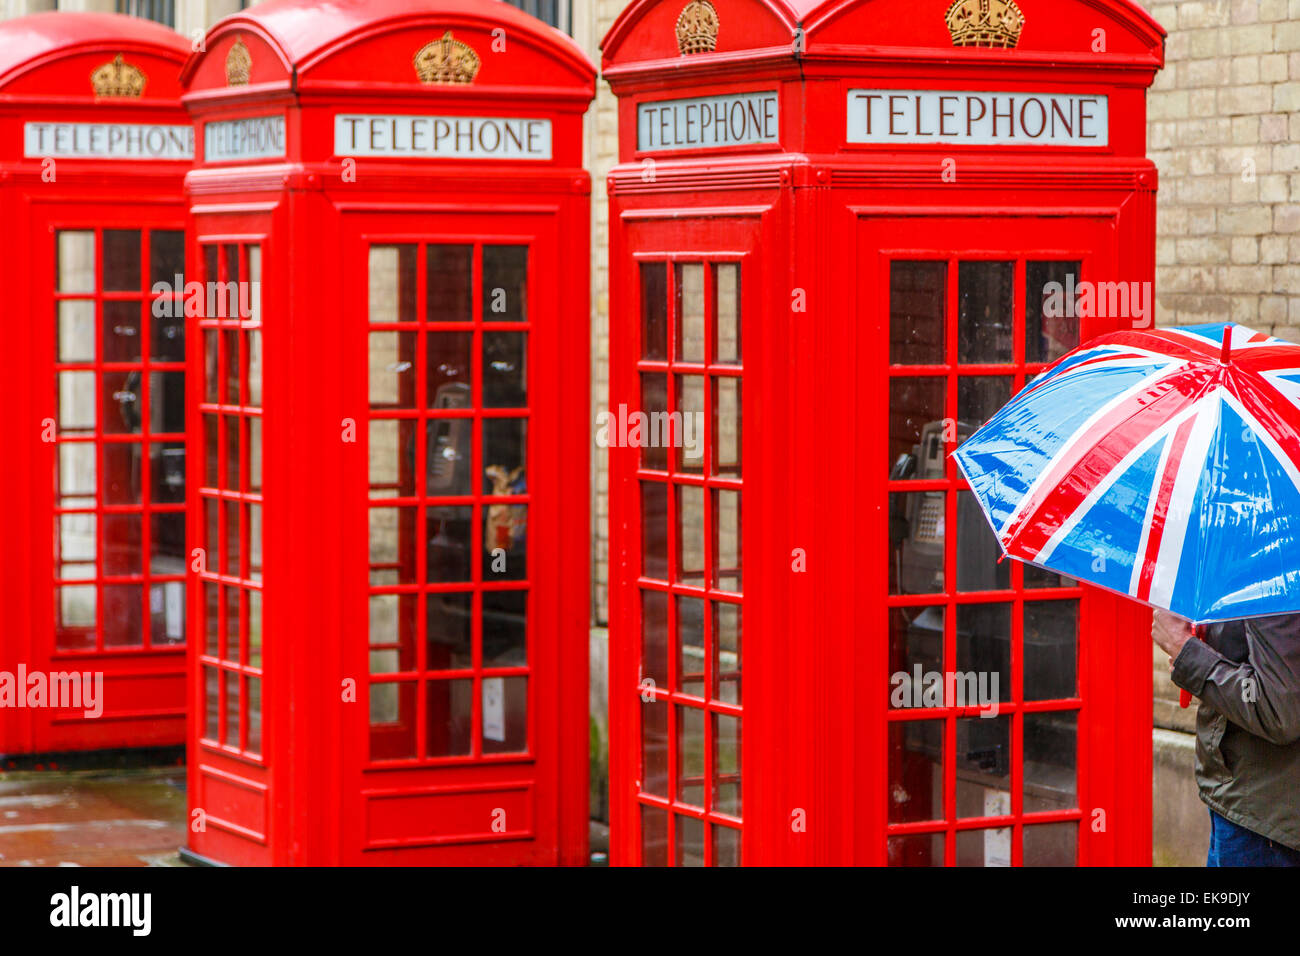 London Telephone boxes in the rain with a person holding a Union Jack Umbrella - Stock Image